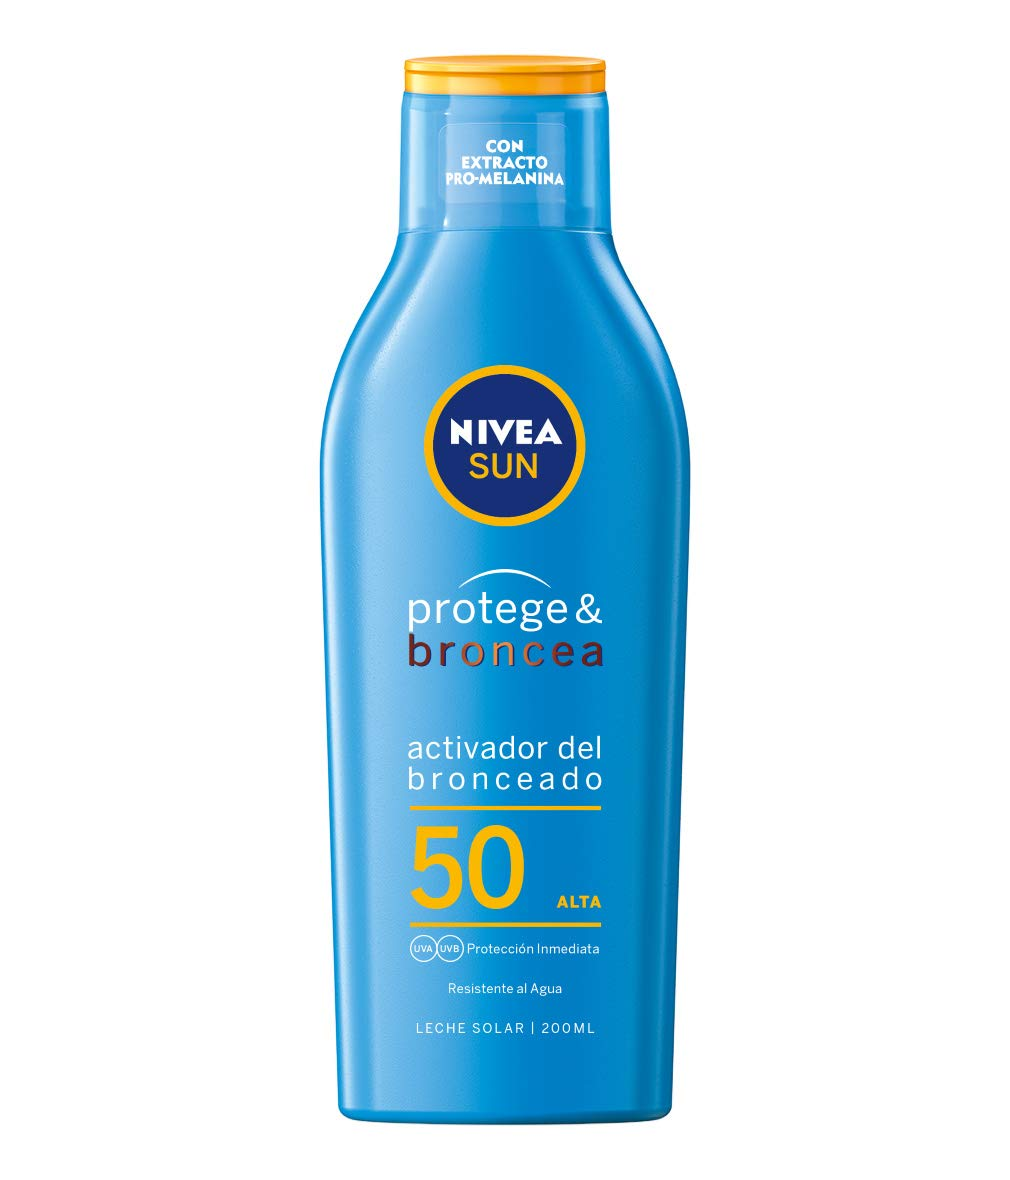 Nivea Sun New product type Protect Max 64% OFF and Tan Milk ml 50 with SPF 200